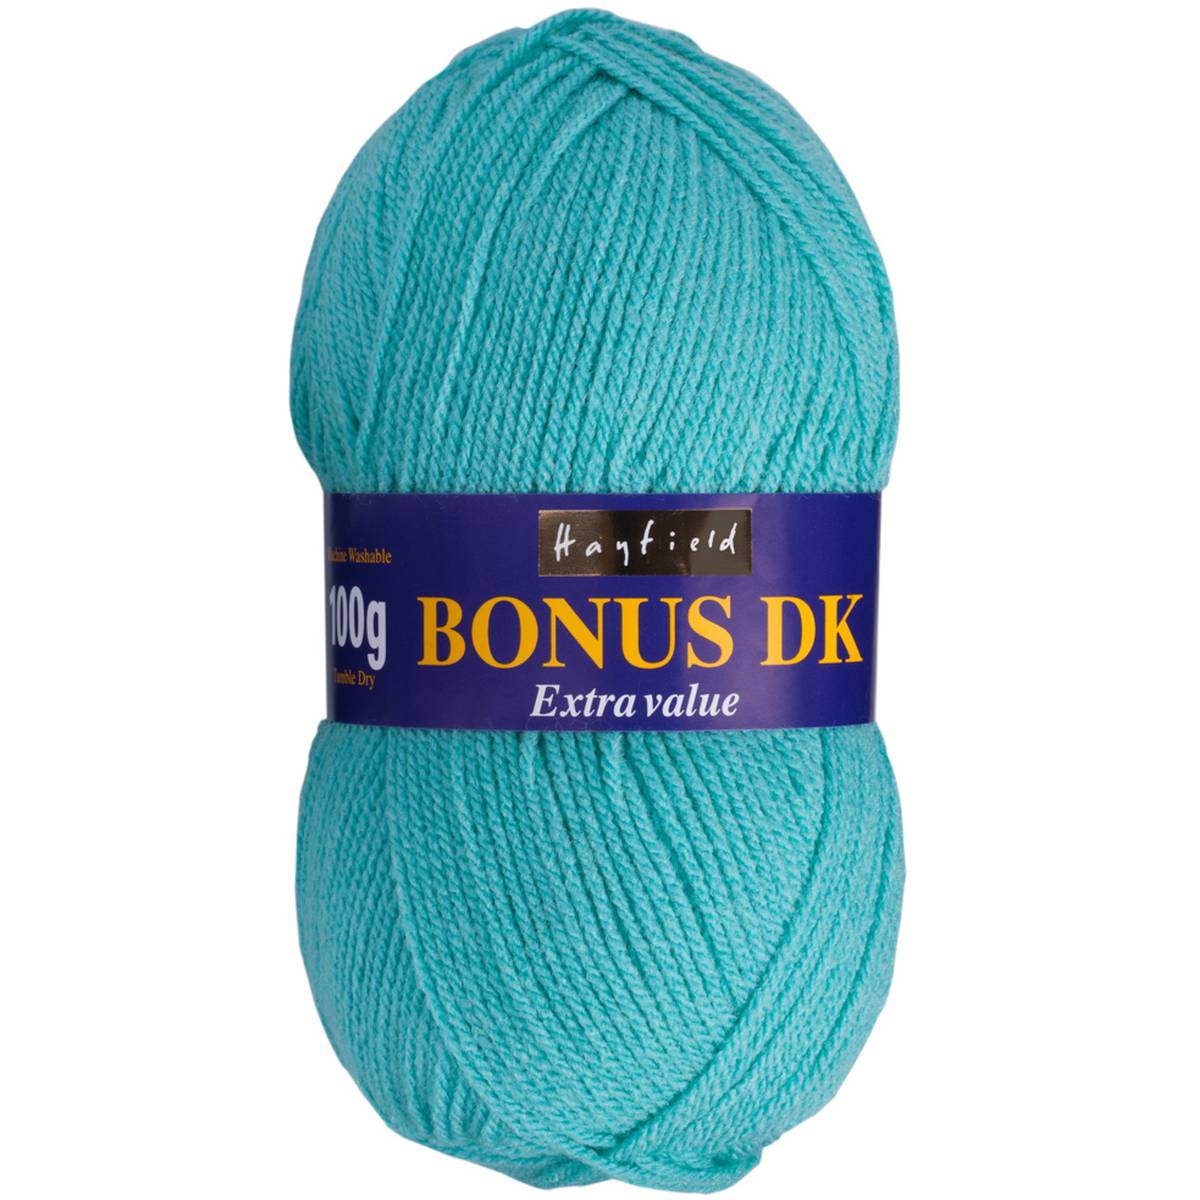 Hayfield Bonus DK Wool - Spearmint Blue Yarn 0727